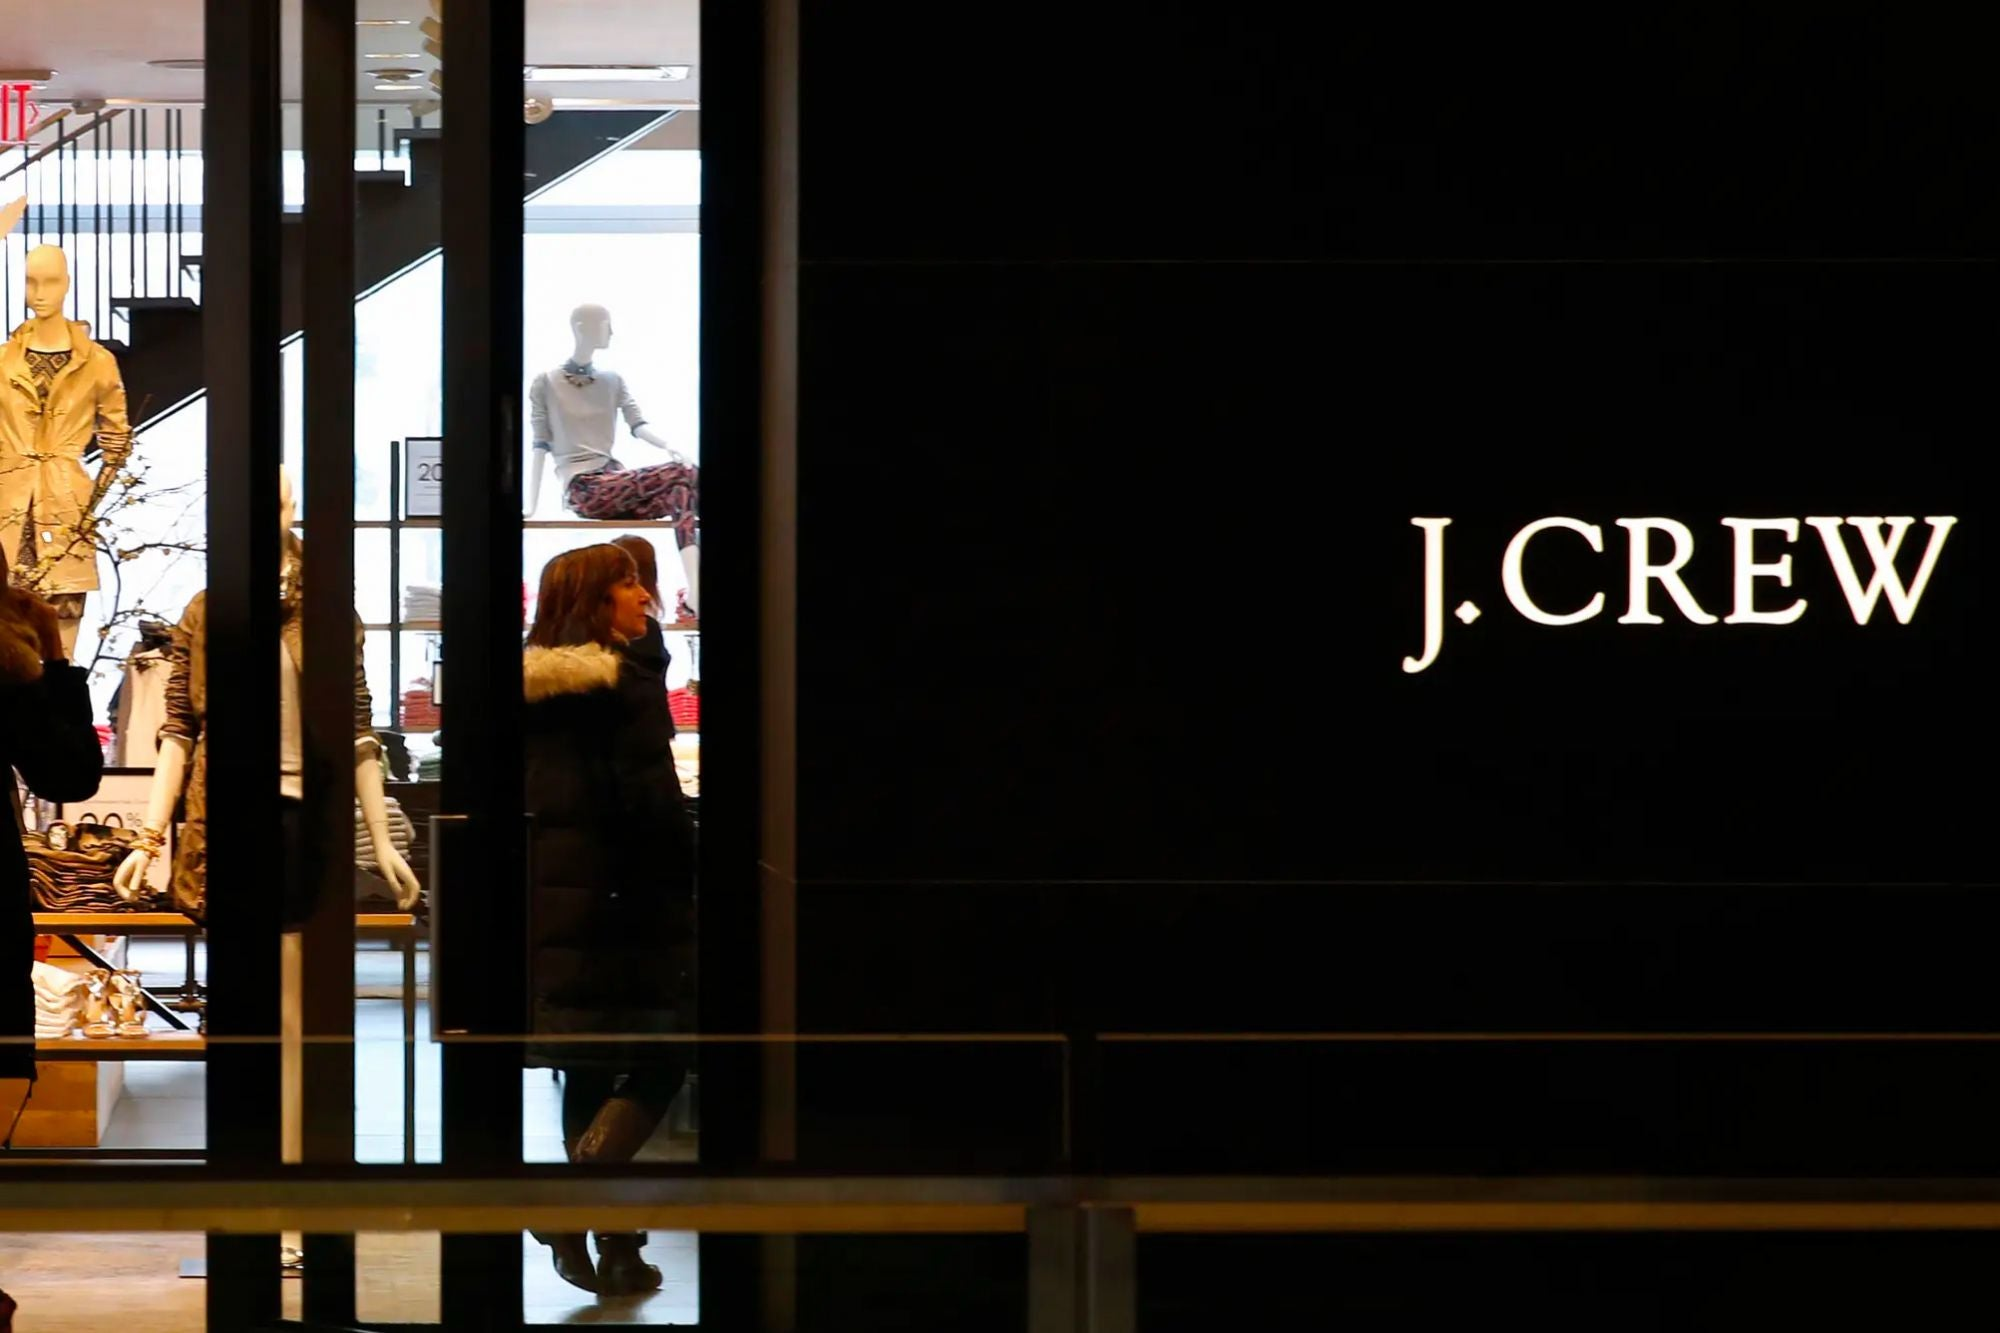 J. Crew Files for Bankruptcy, the First Major Retailer Pushed Over the Brink